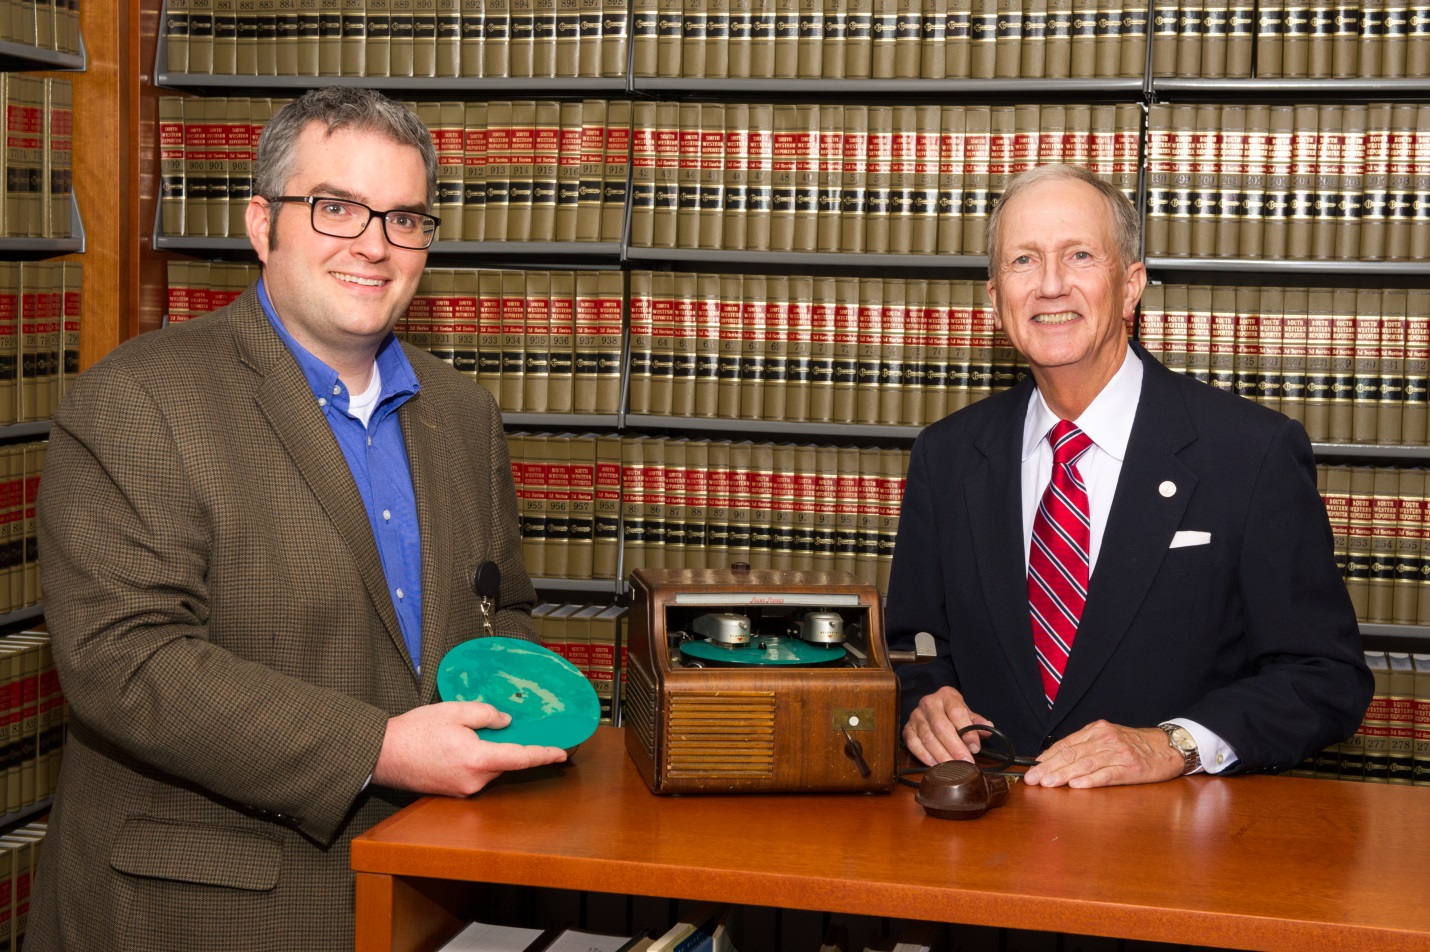 Law Library Deputy Director Joseph Lawson and Harris County Attorney Vince Ryan with a 1940s soundscriber machine.